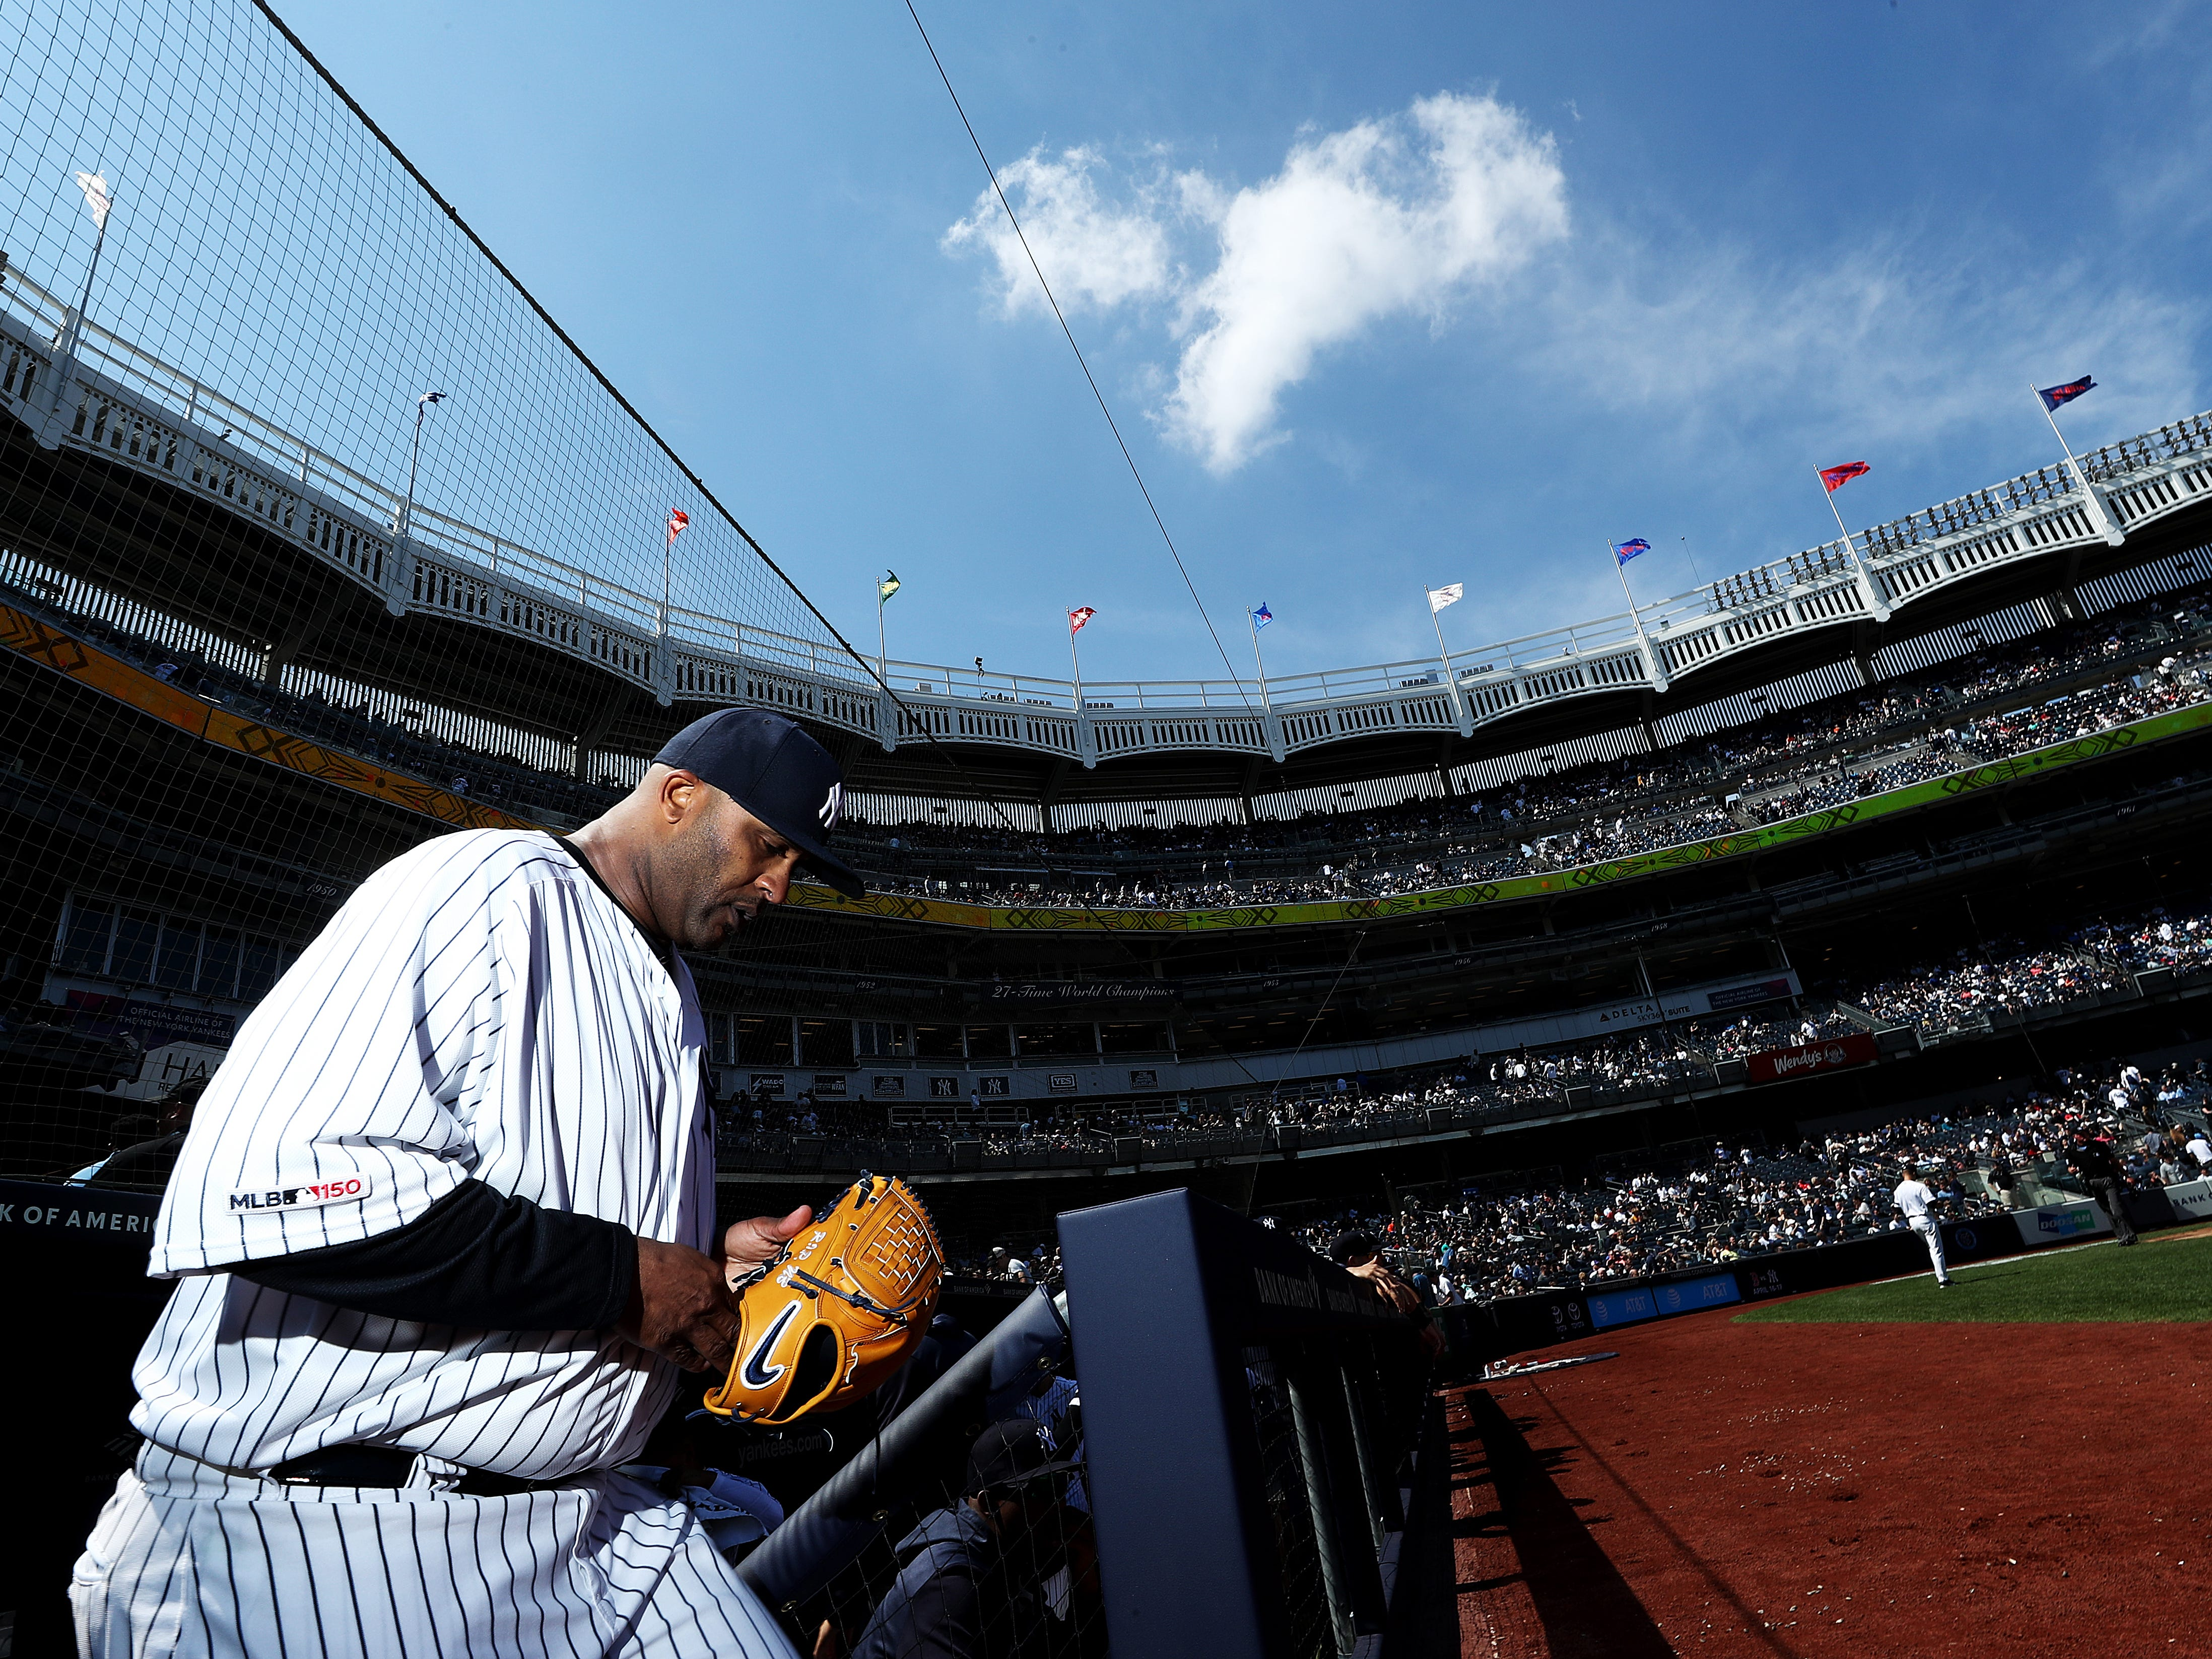 CC Sabathia #52 of the New York Yankees heads onto the field making his first start of his last season in Major League Basebal against the Chicago White Sox during their game at Yankee Stadium on April 13, 2019 in New York City.